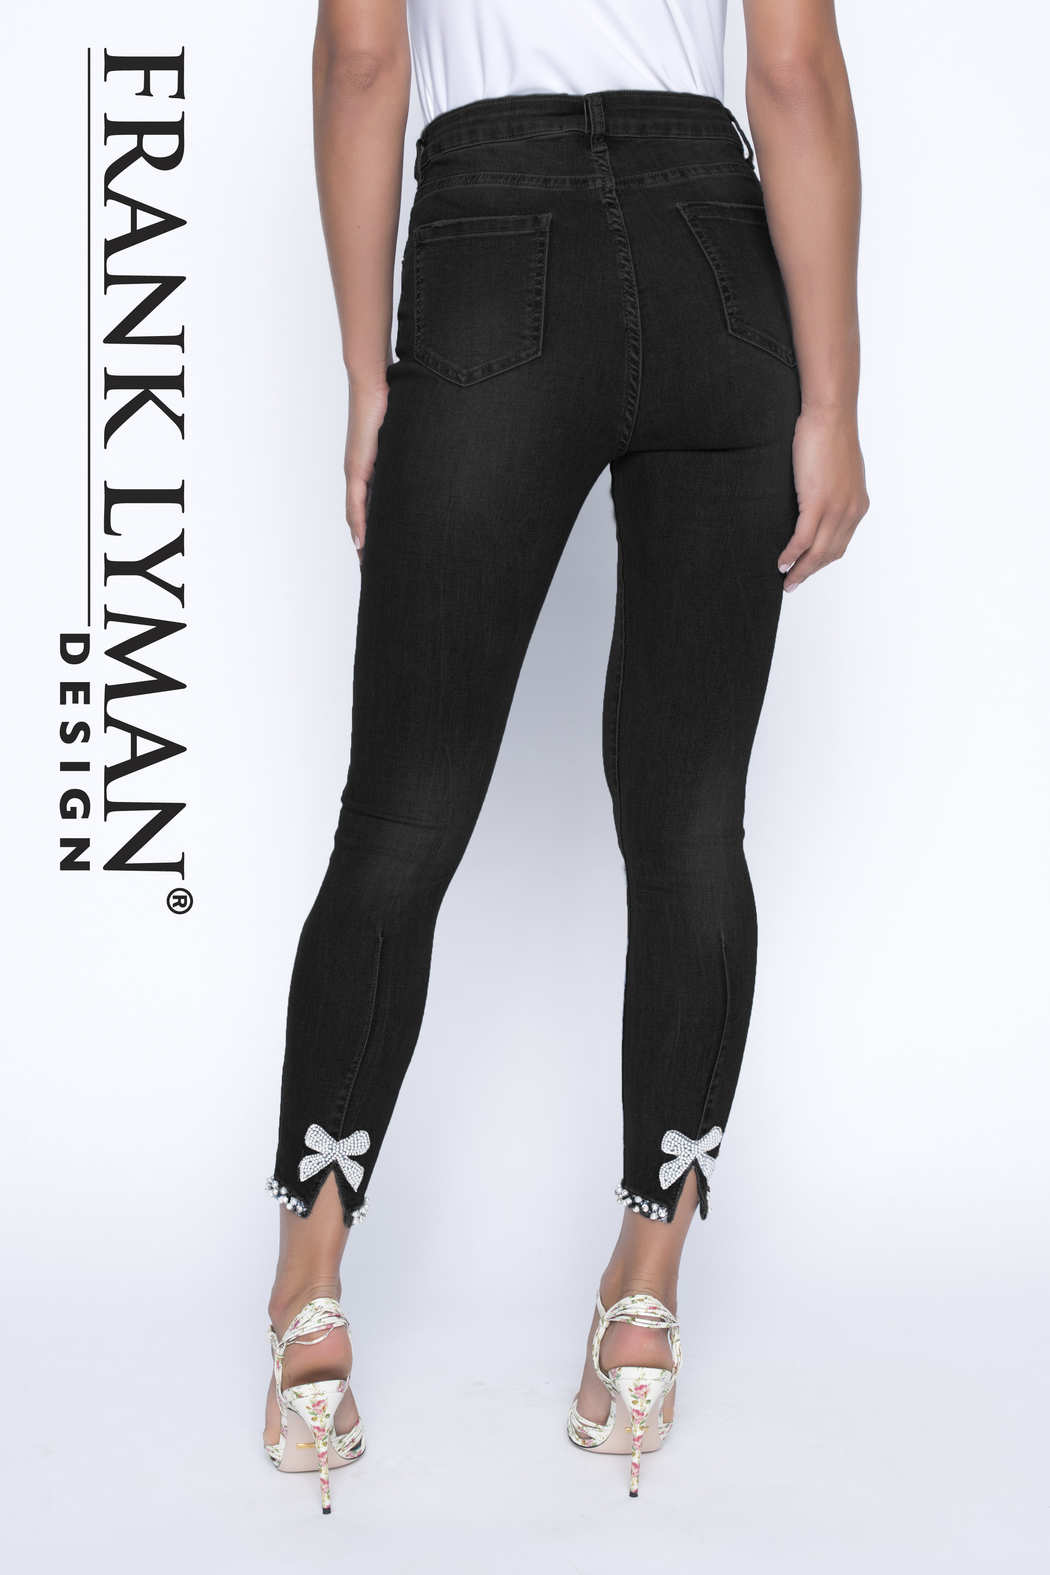 Frank Lyman Black Woven Jeans Pant - Front Cropped Image